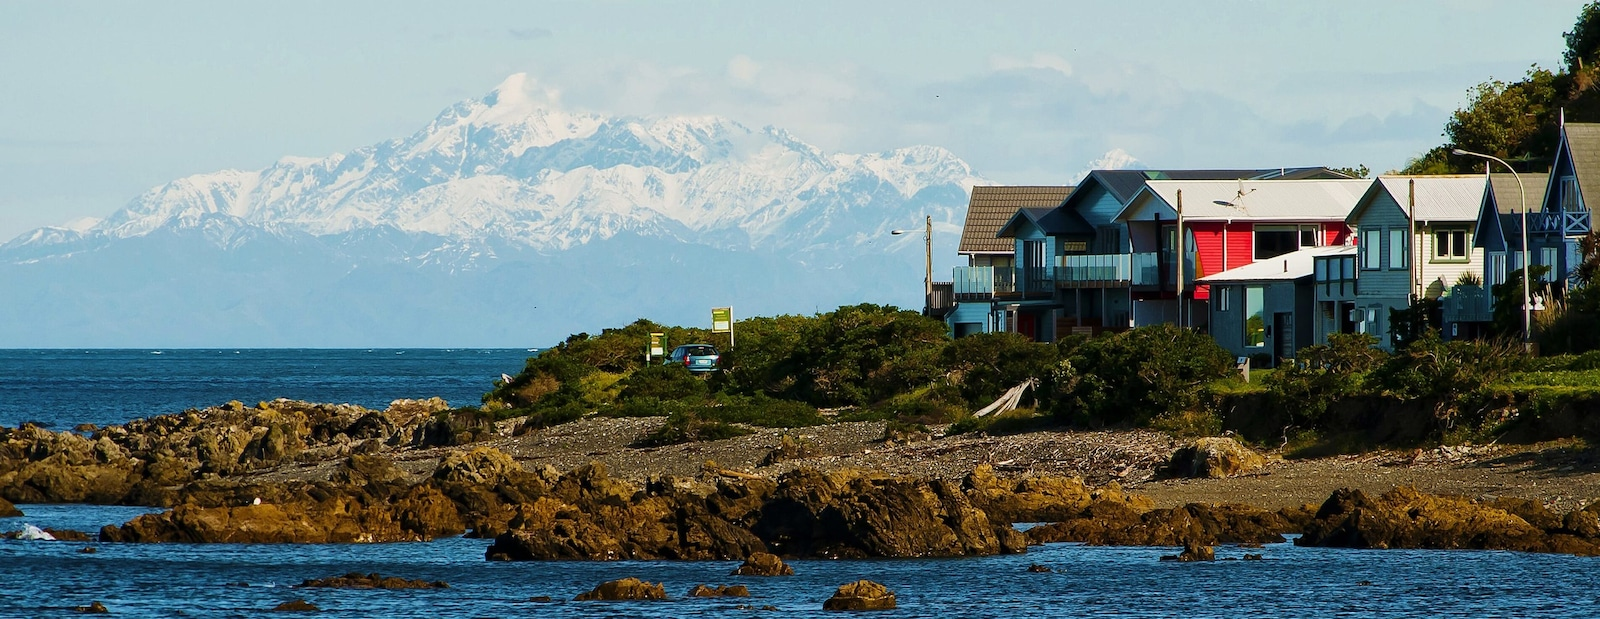 Vacation rentals in Palliser Bay